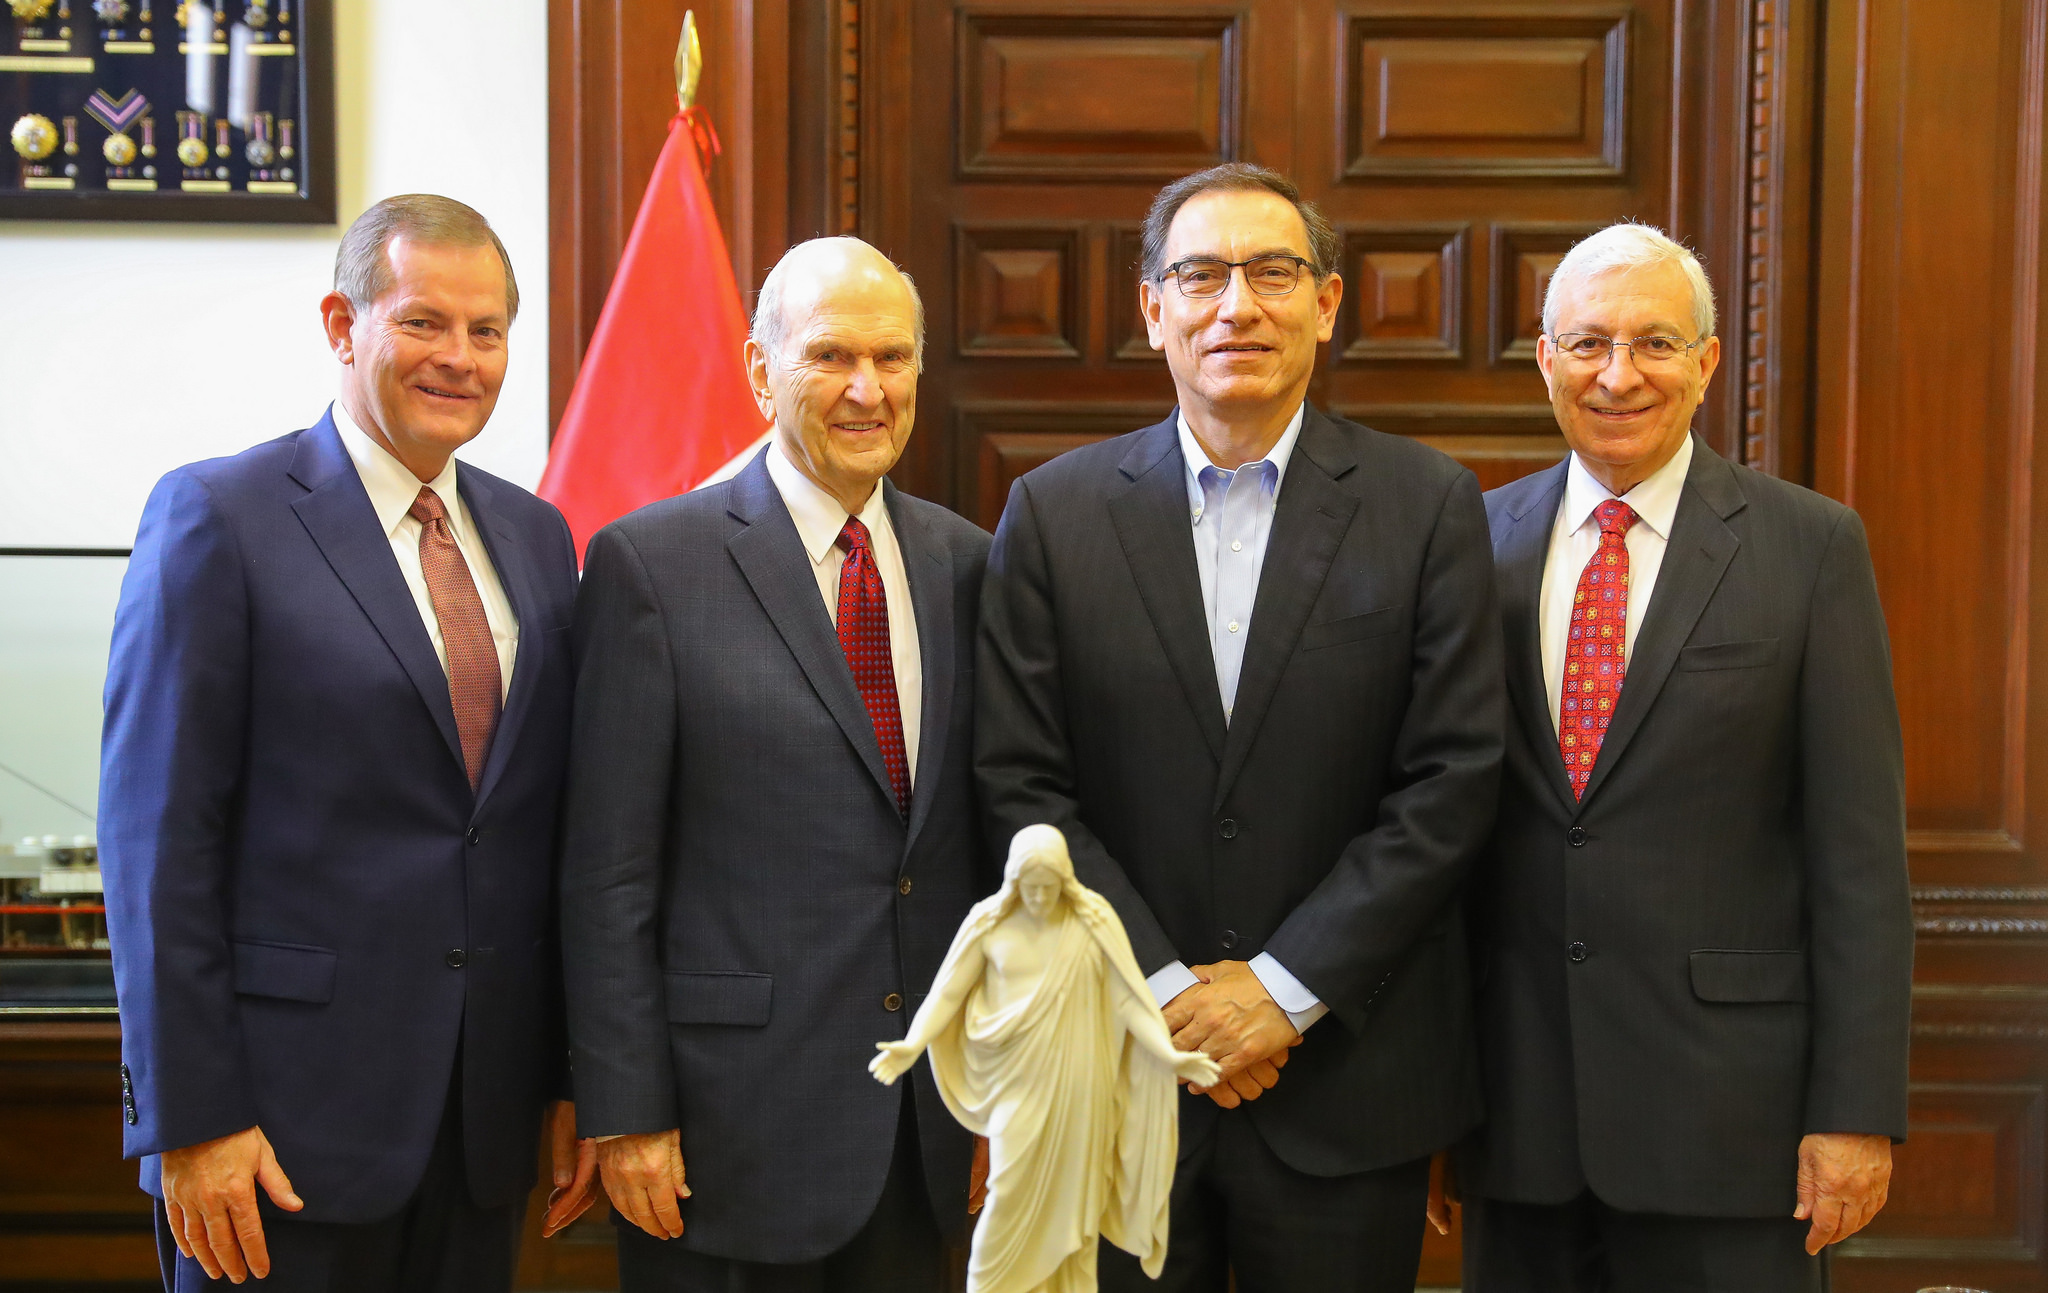 Left to right, Elder Gary E. Stevenson, President Russell M. Nelson. Peru President Martín Vizcarra and Elder Enrique R. Falabella pose after meeting at the presidential palace in Lima, Peru, on Saturday, October 20, 2018.